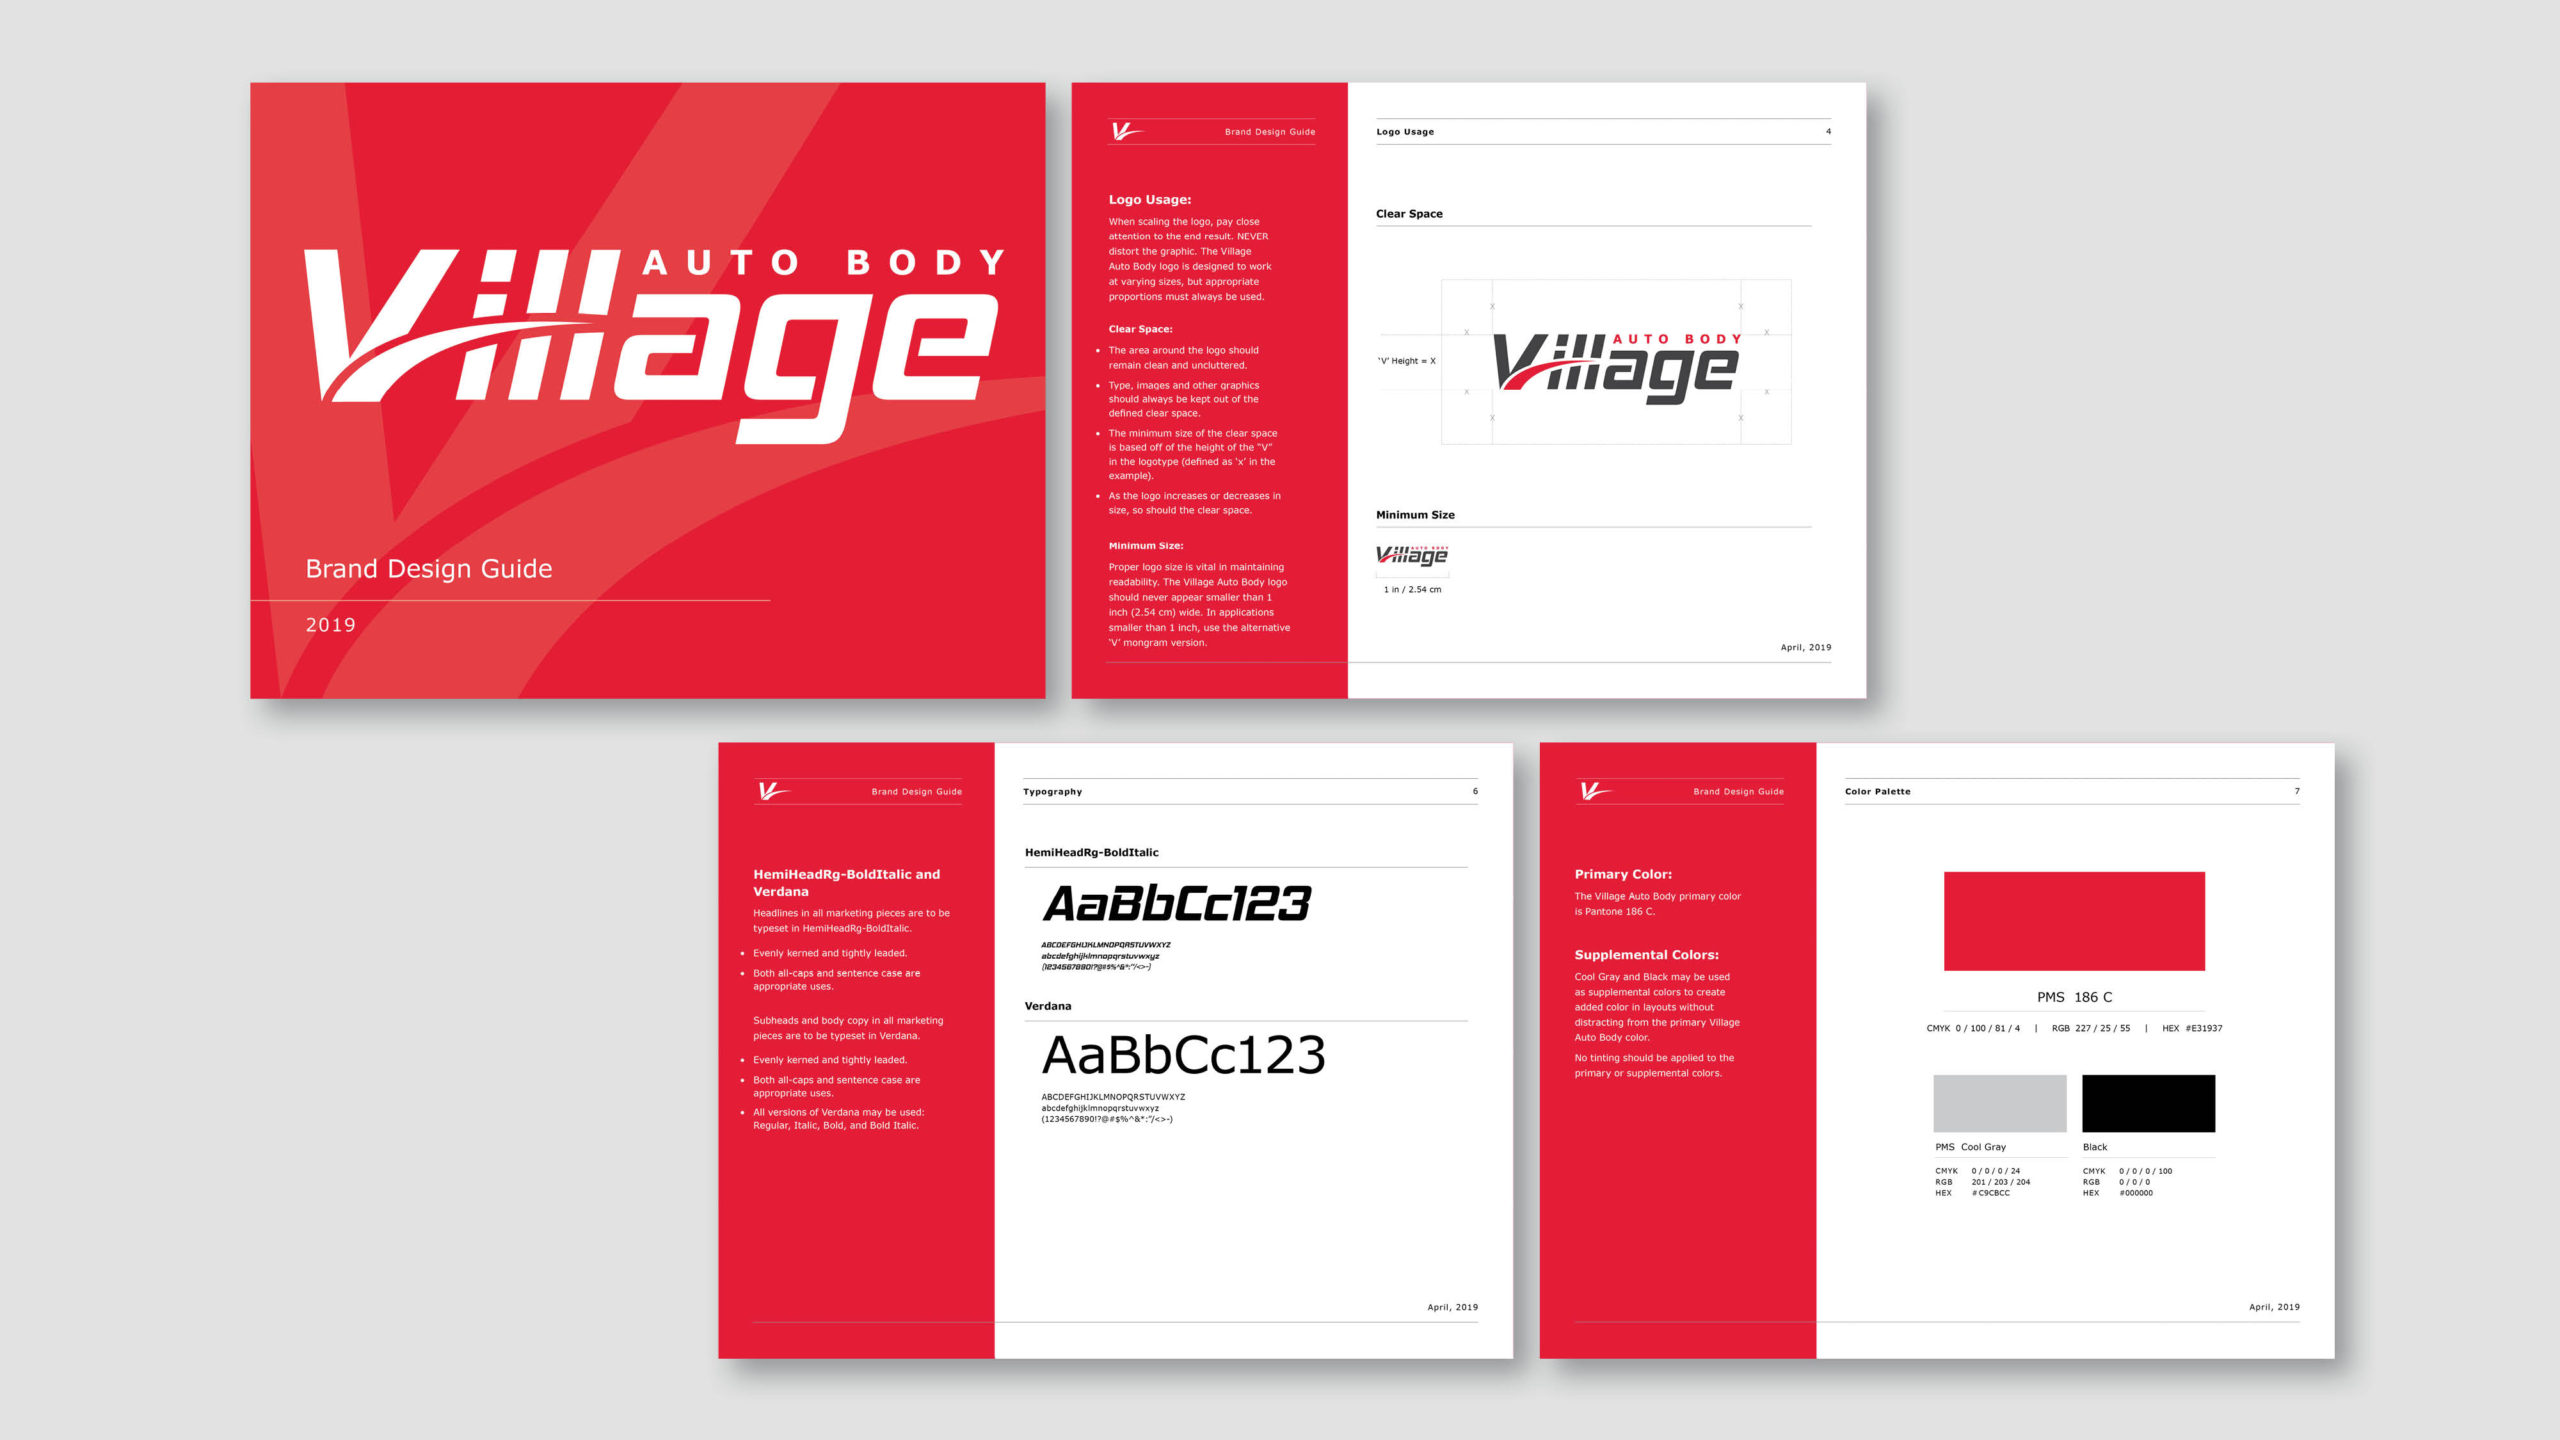 Brand Identity and Brand Design Buide including Typeface Design - Village Auto Body